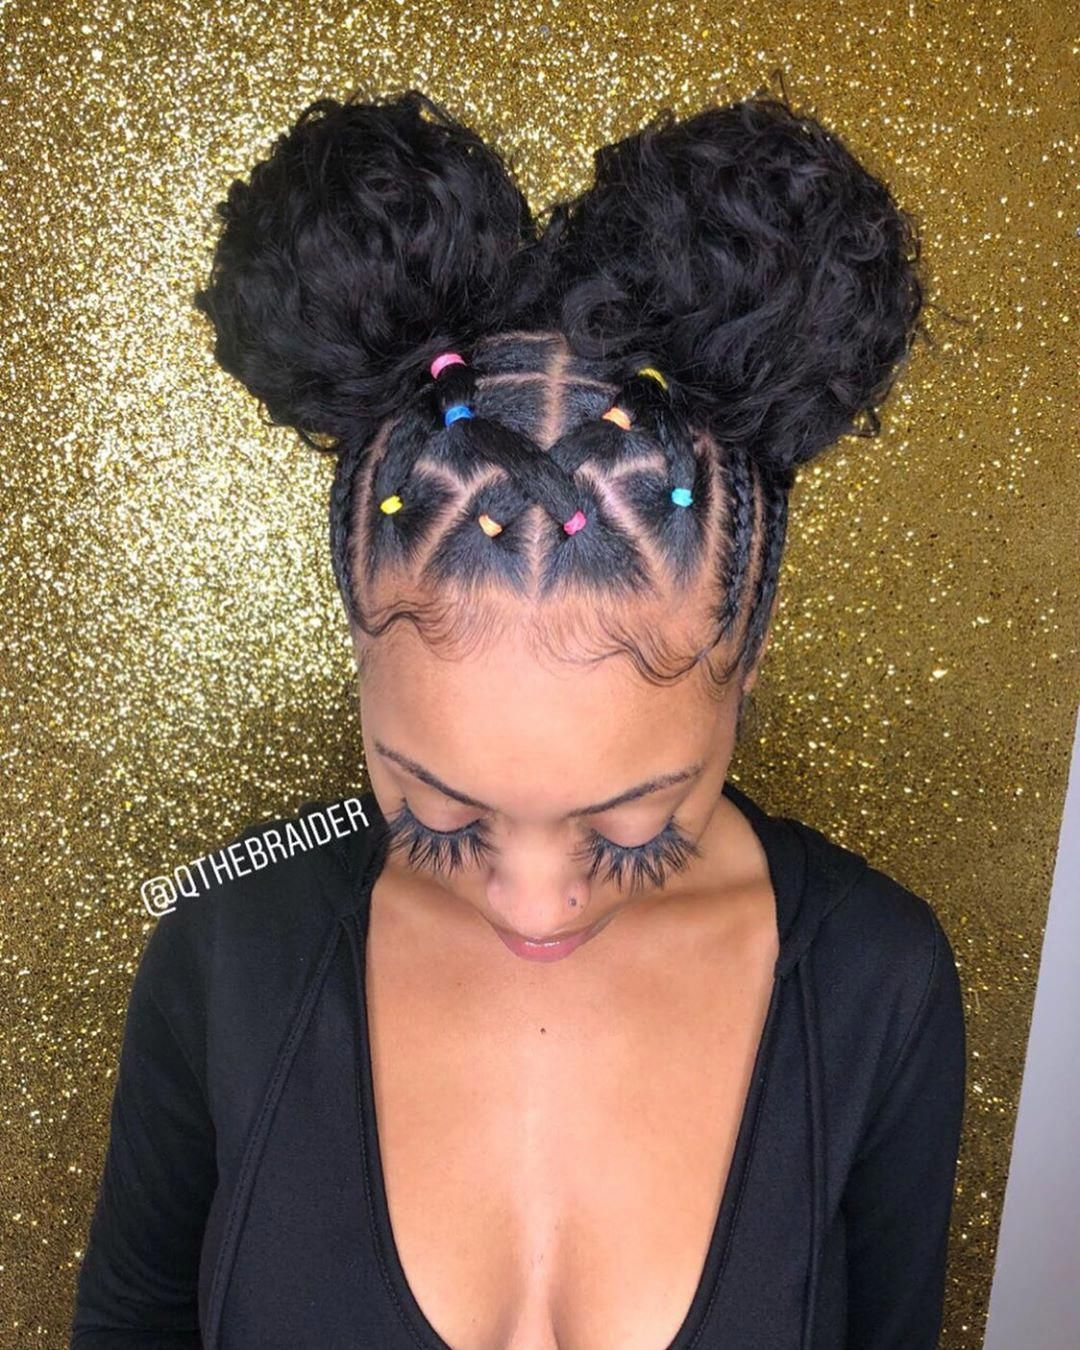 39+ Curly hairstyles for natural hair ideas in 2021